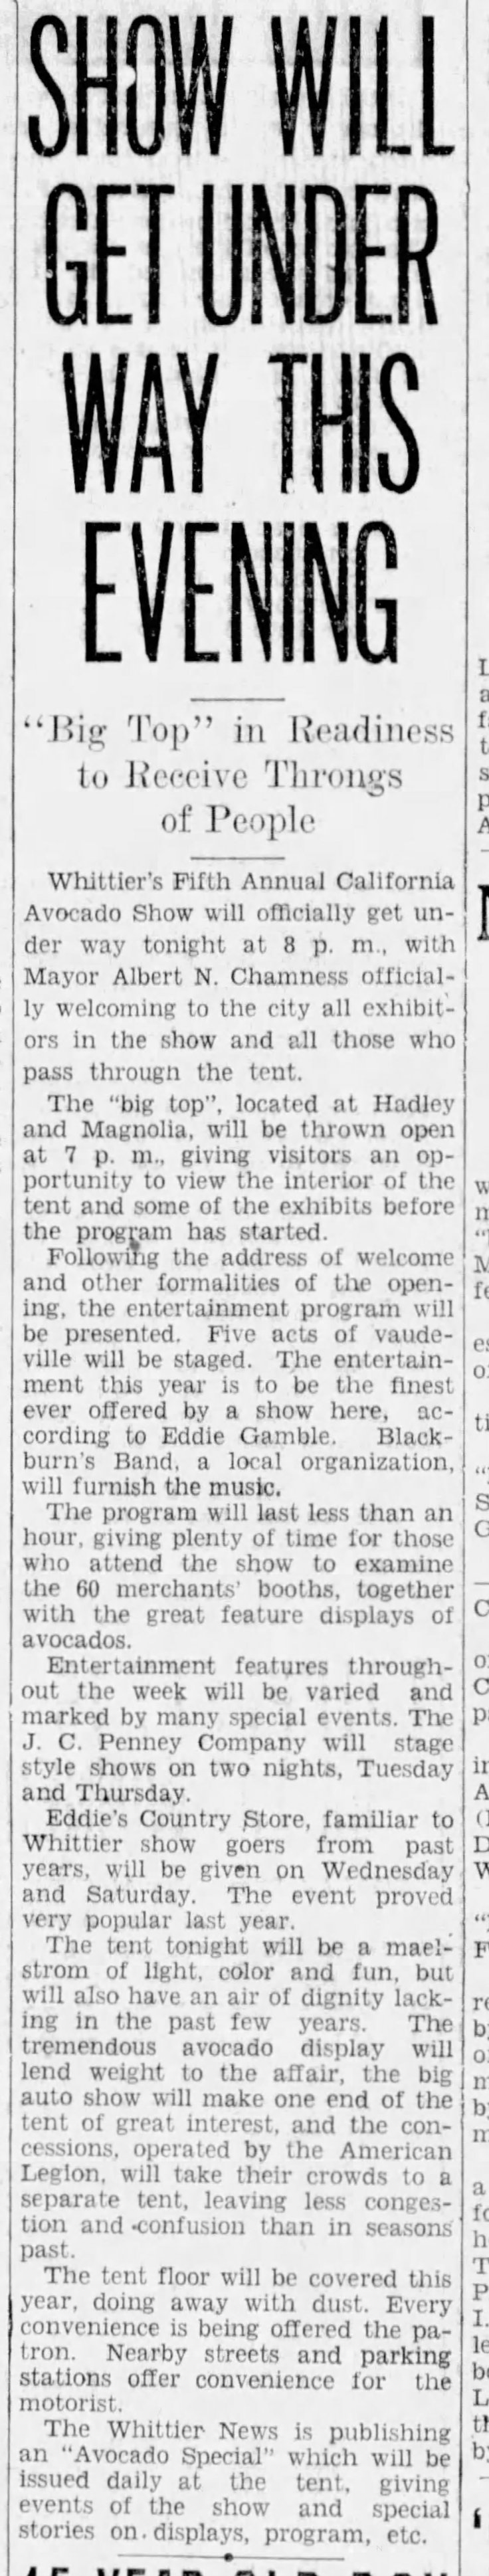 The_Whittier_News_Mon__May_14__1928_